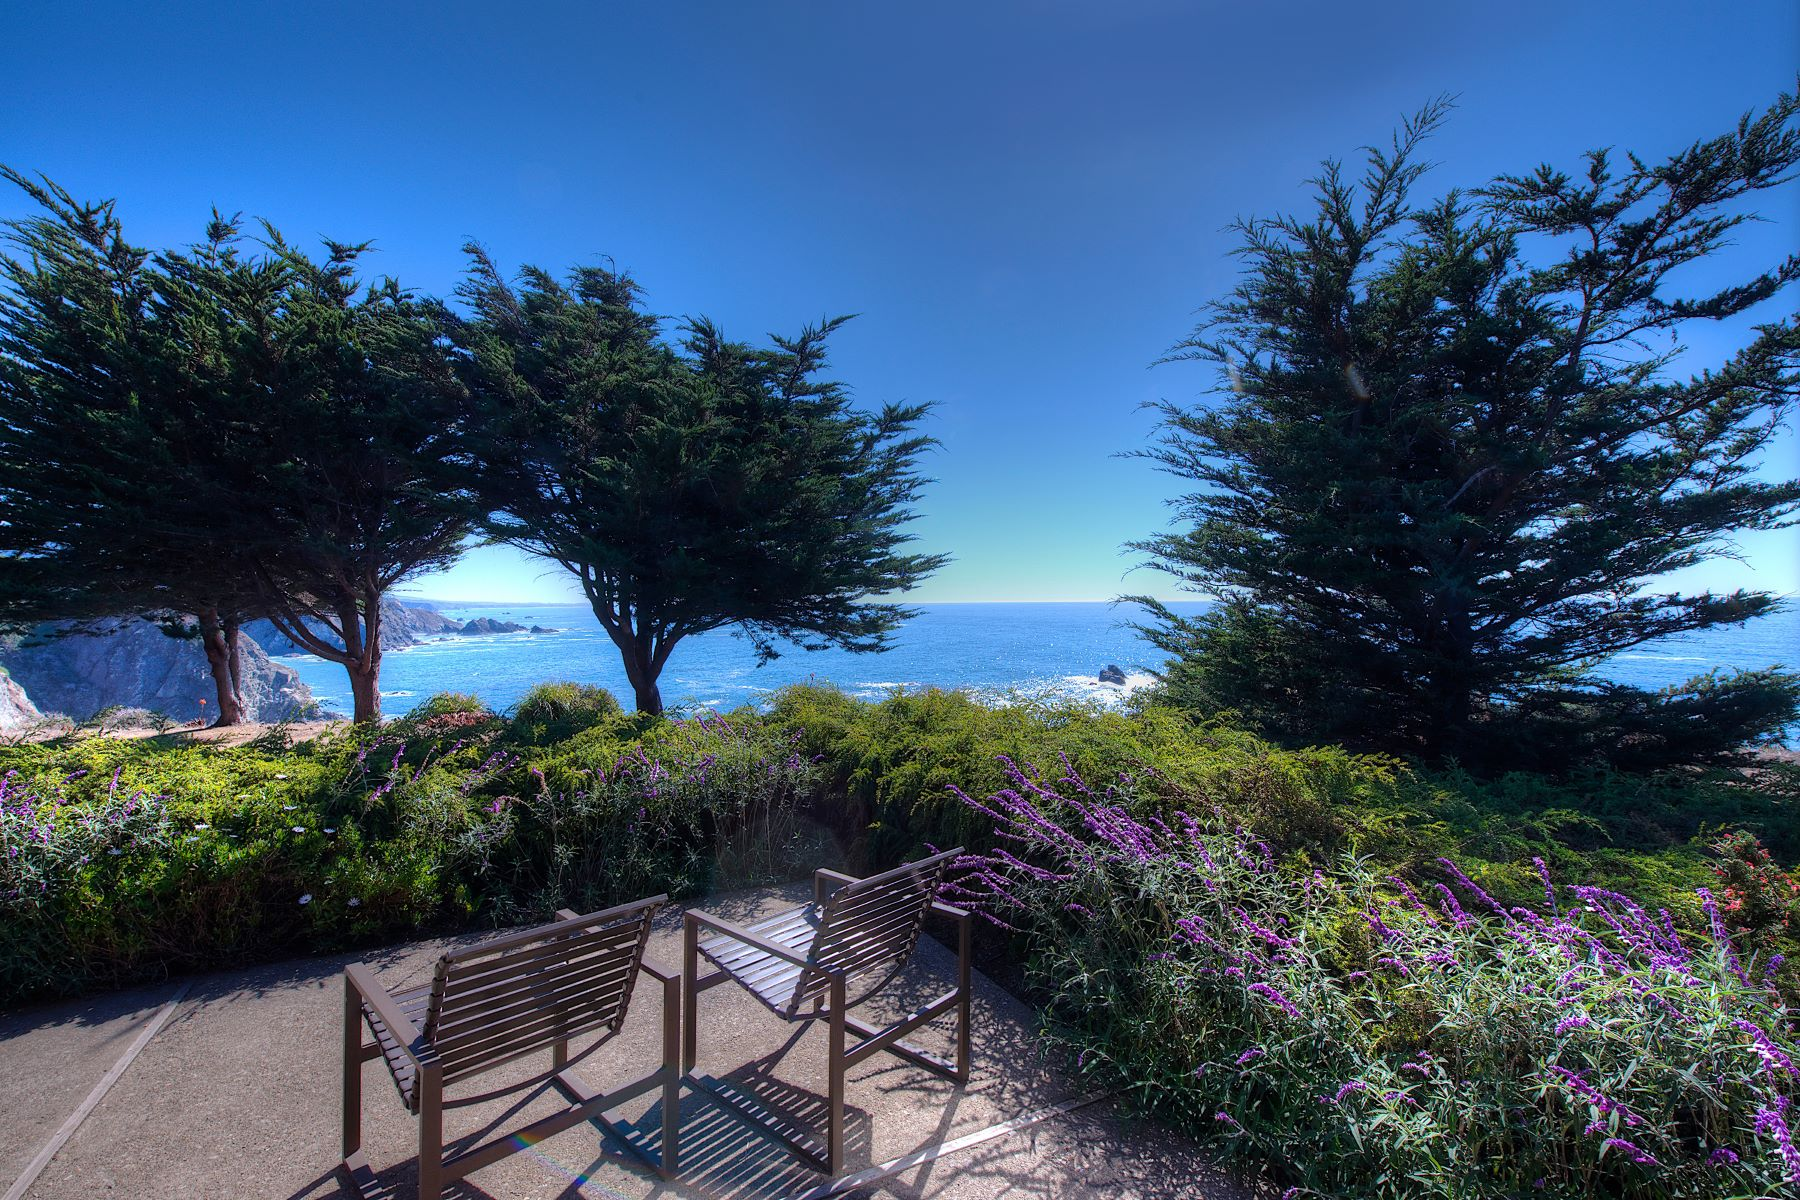 Additional photo for property listing at Modern Architectural Masterpiece on Mendocino Coast 7000 South Hwy 1 Elk, カリフォルニア 95432 アメリカ合衆国